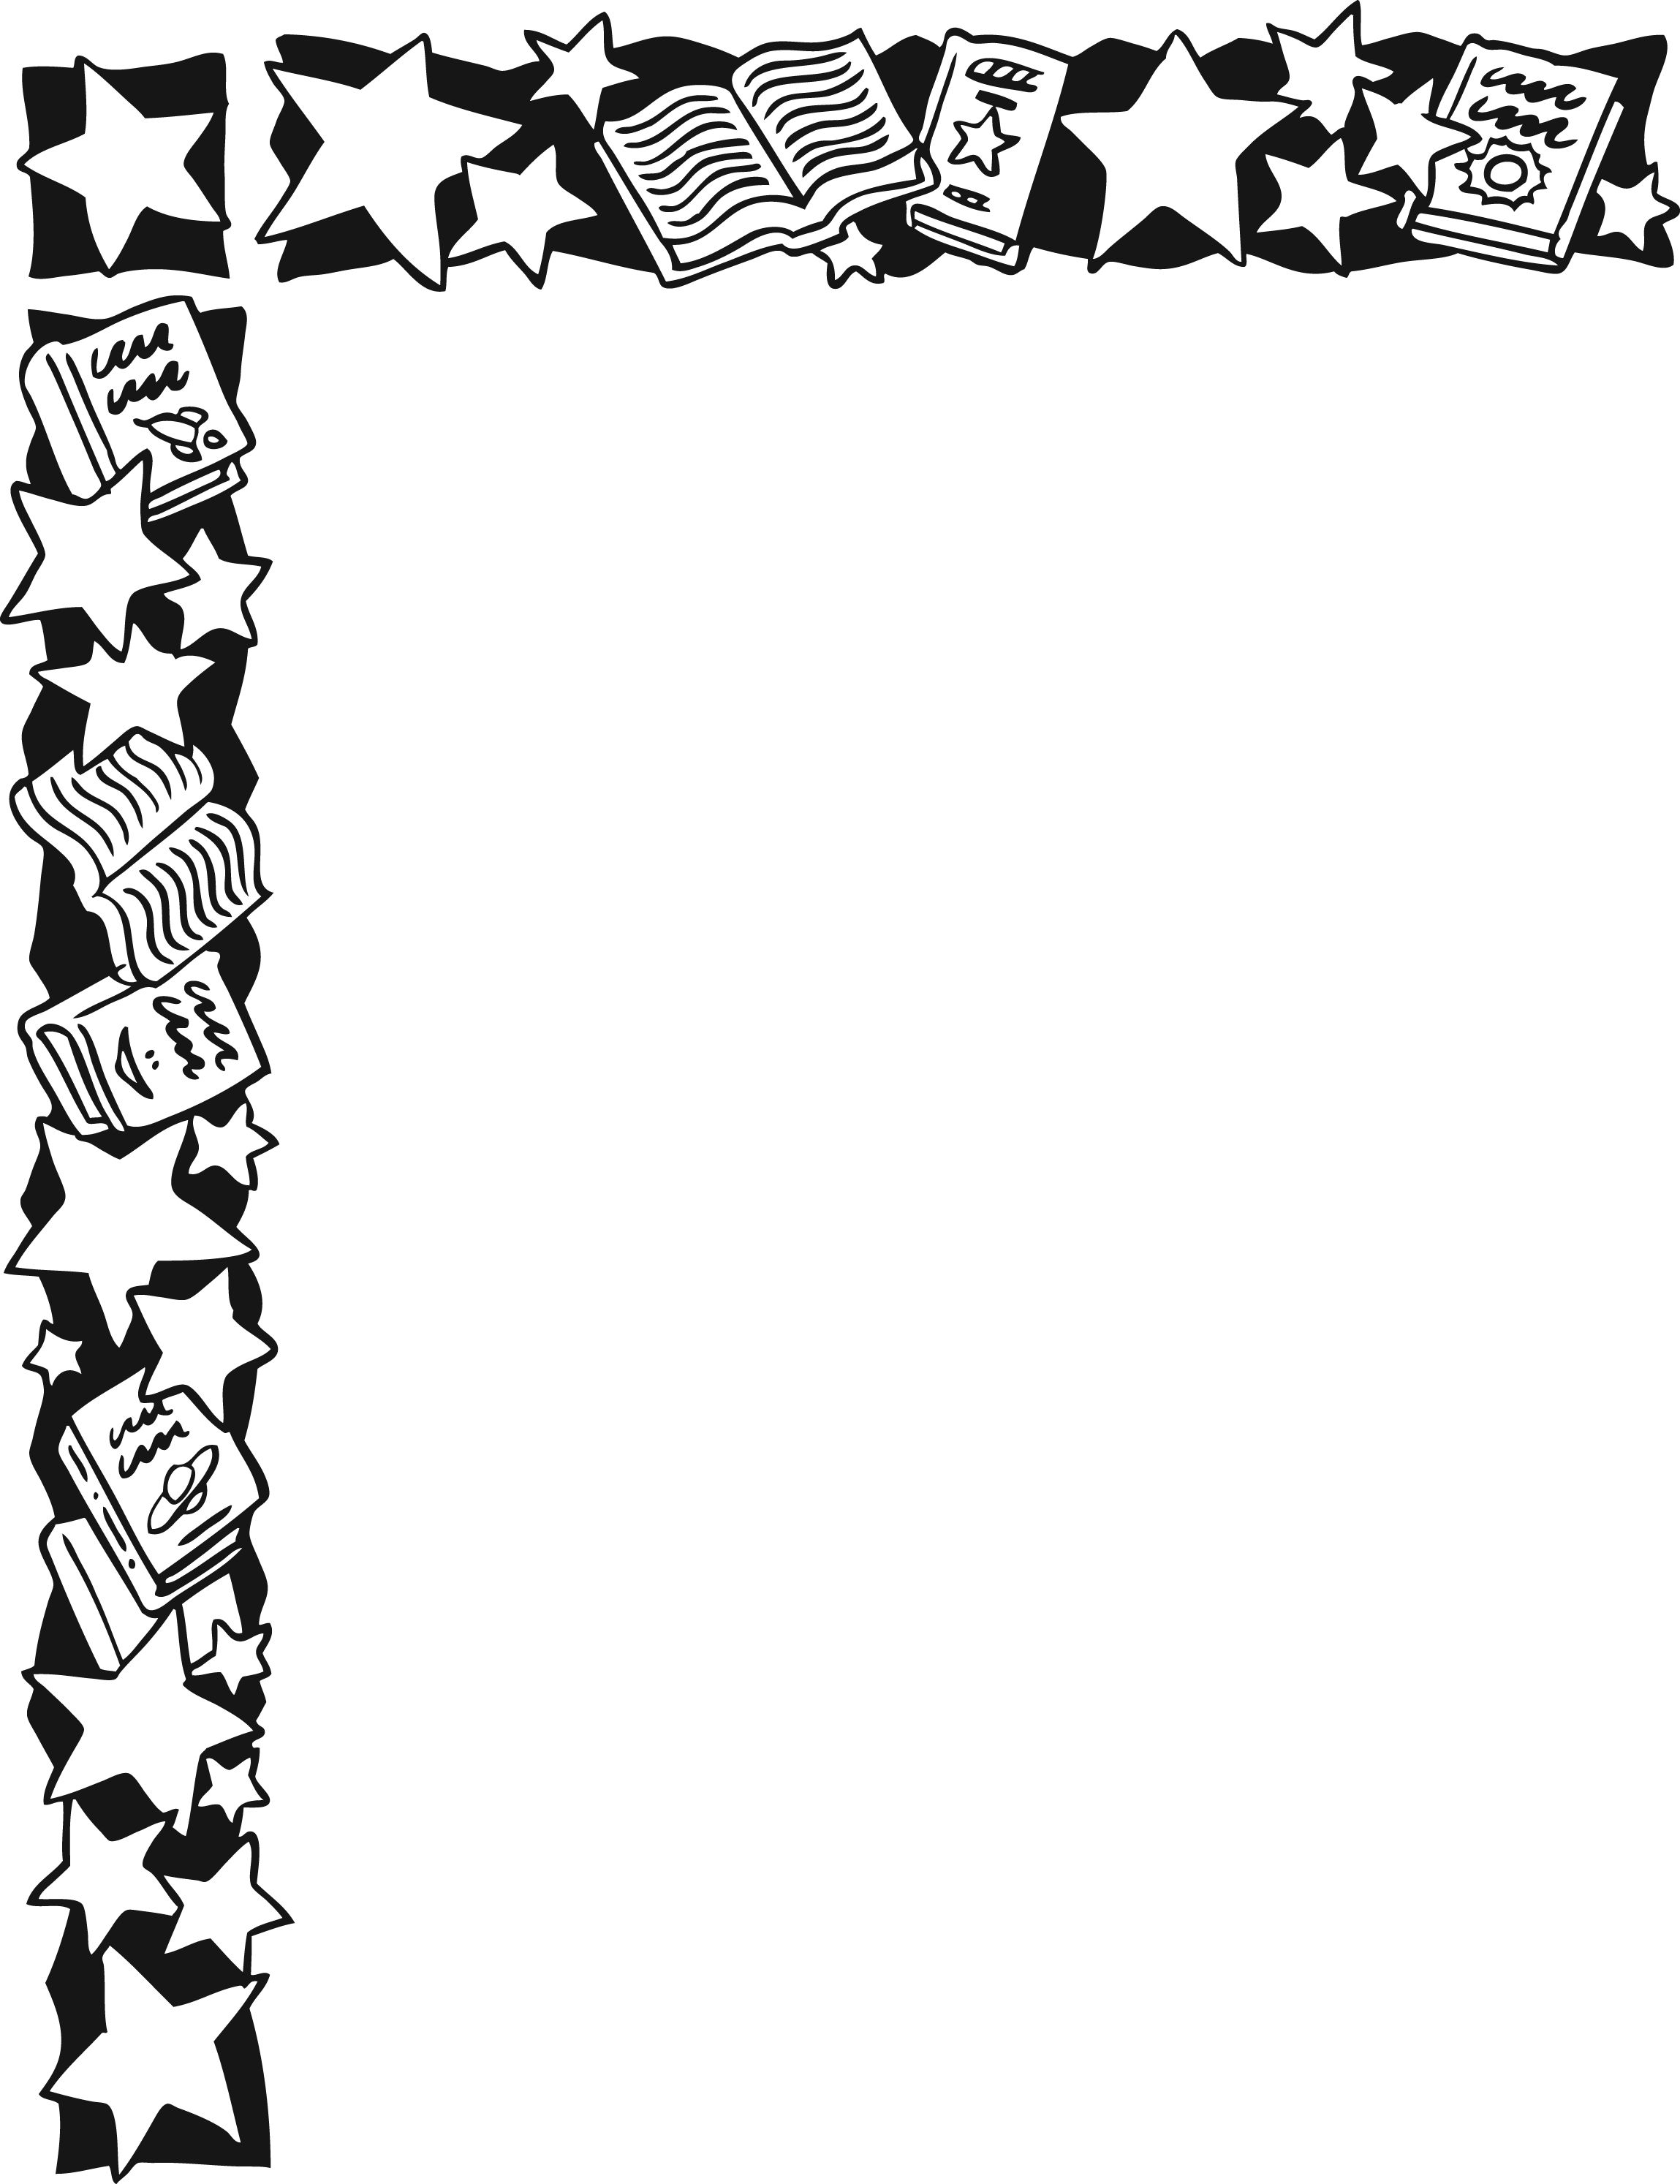 Black And White Star Border Clip Art | www.imgkid.com ...